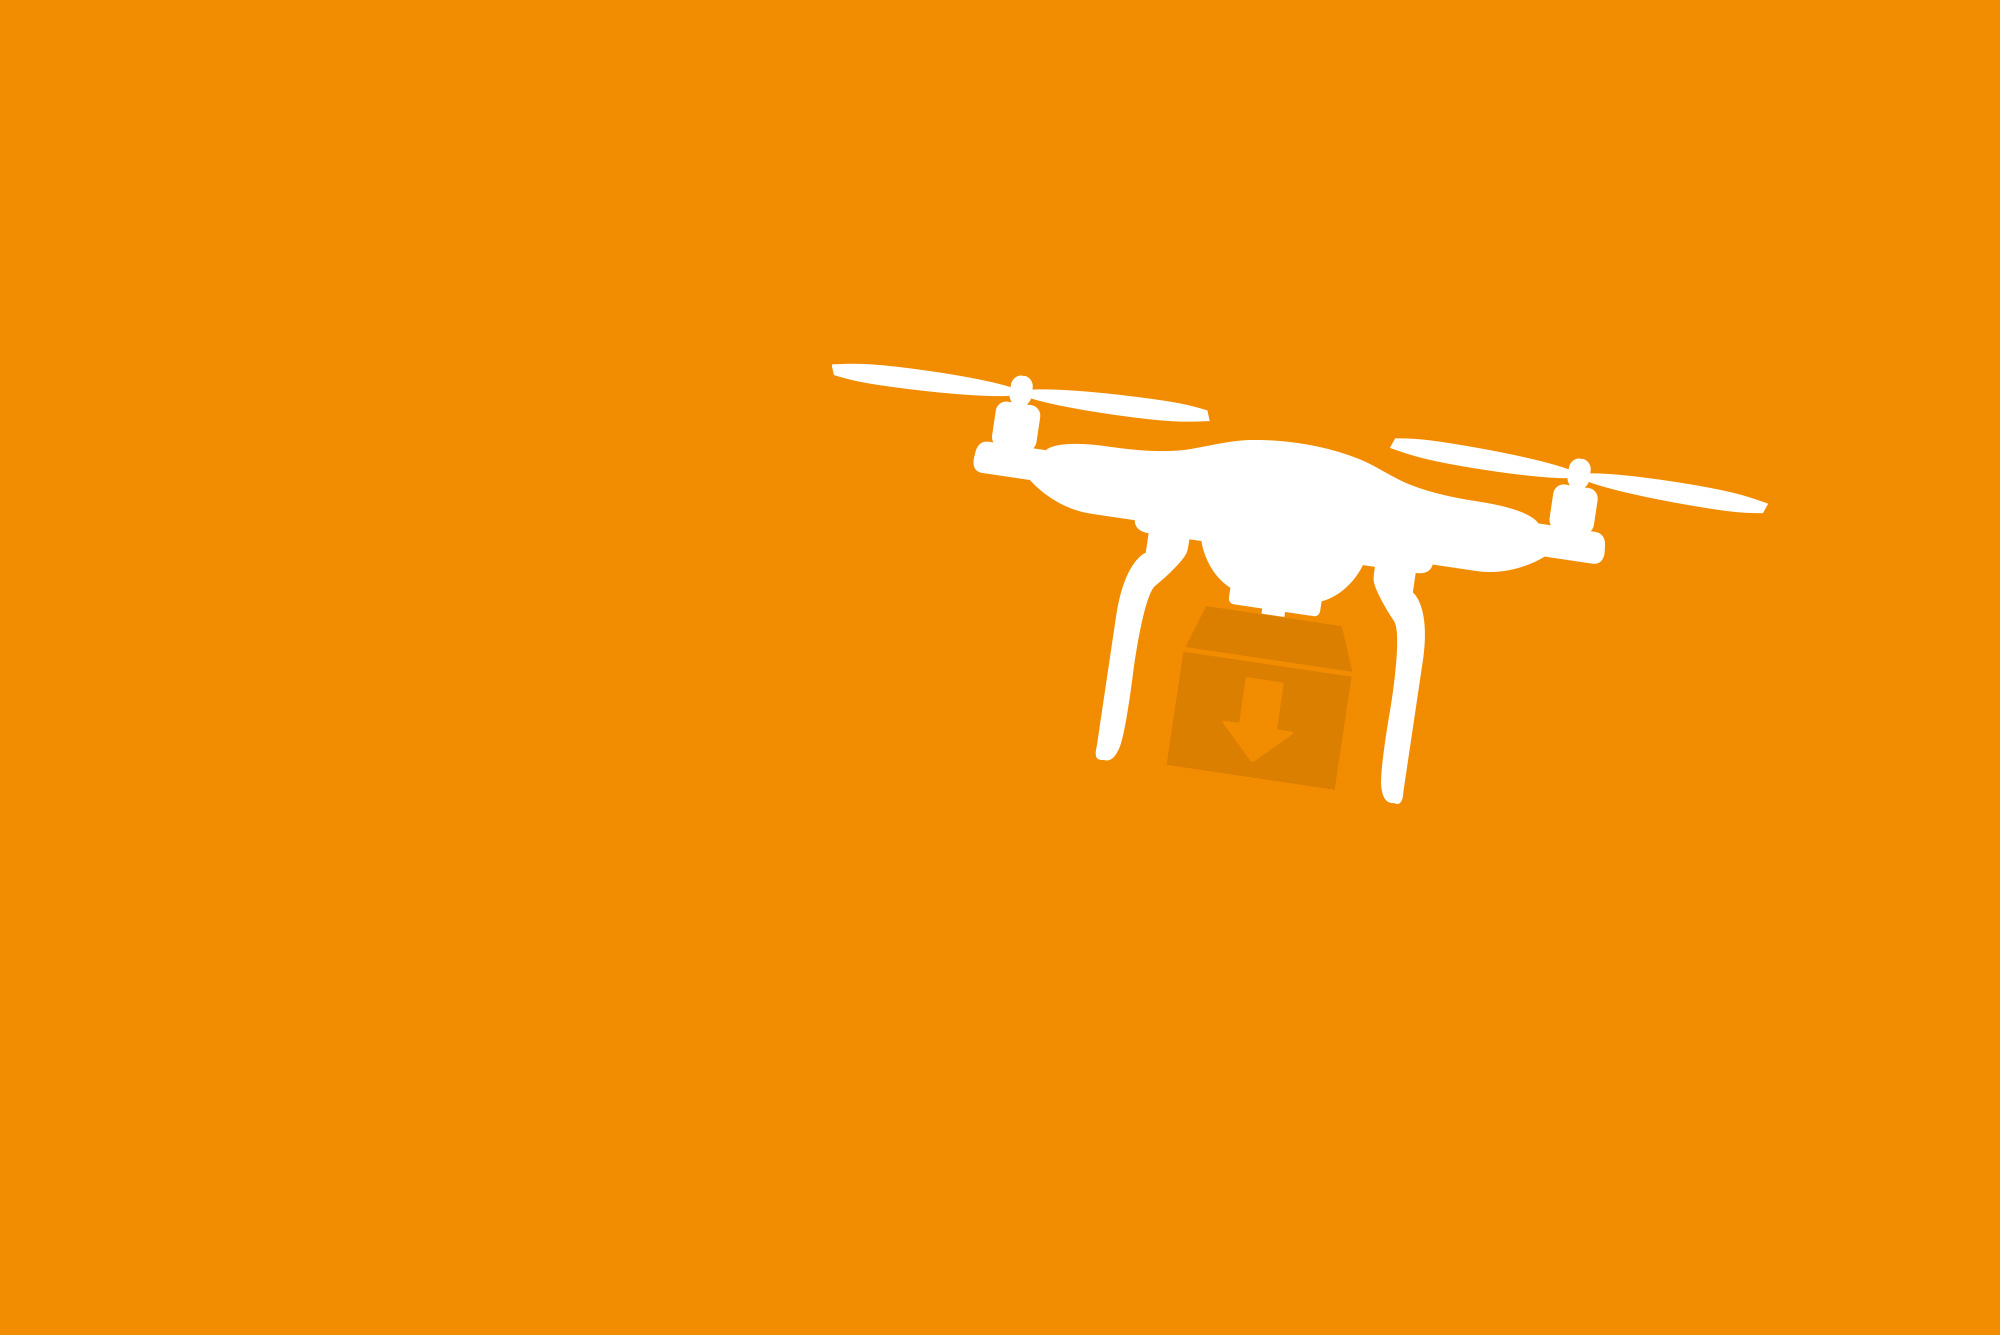 The outline of a drone in white on an orange background